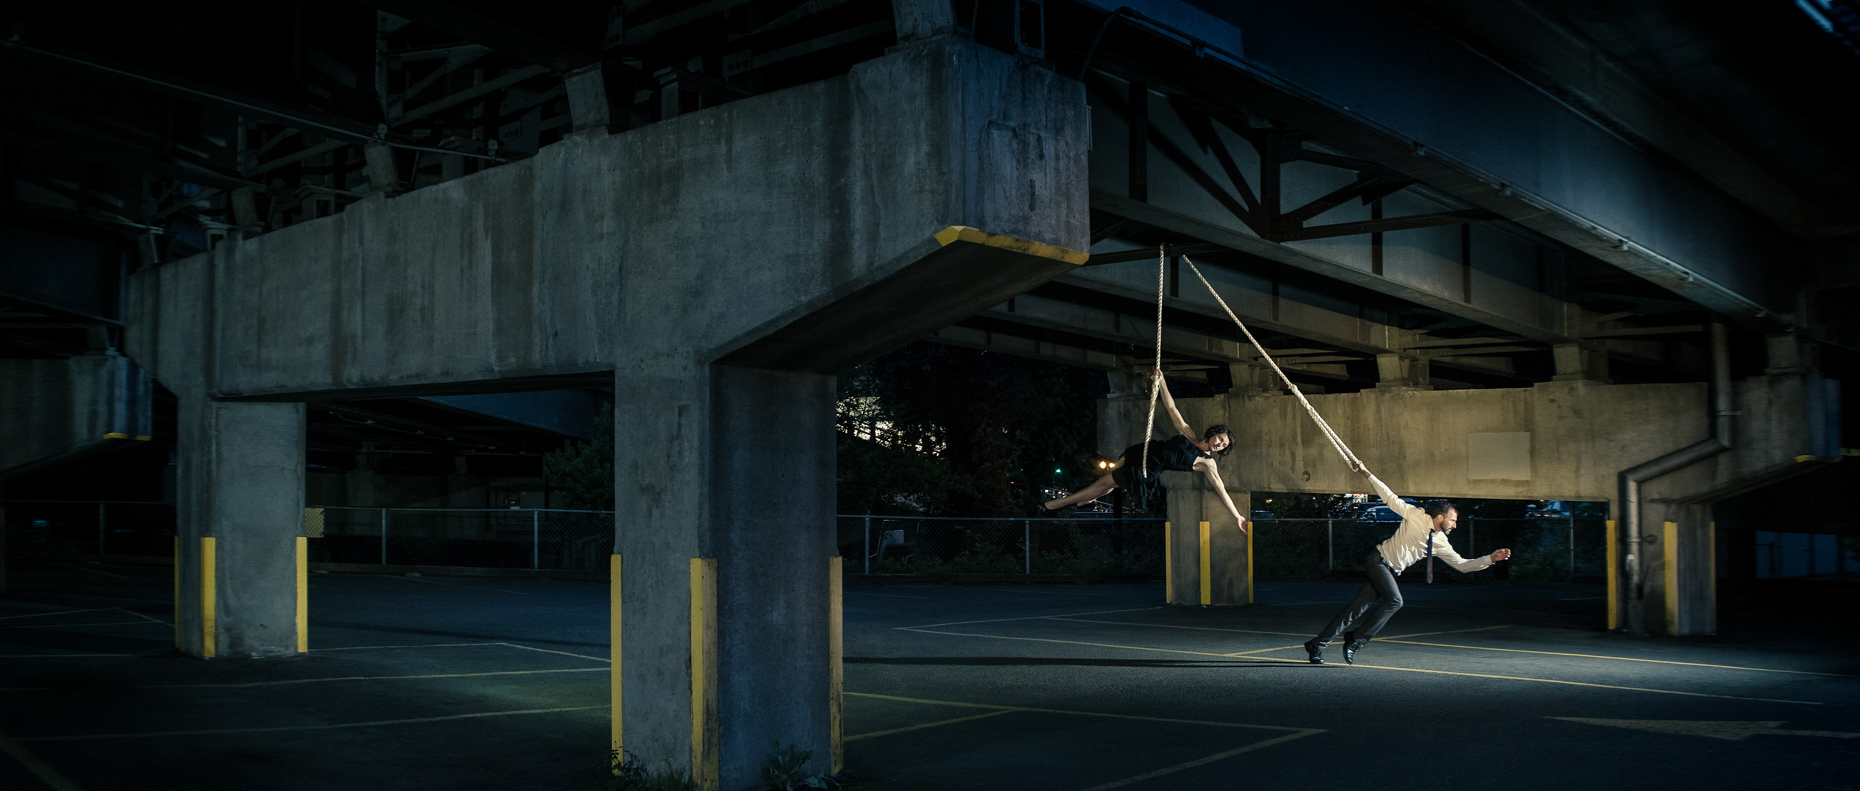 In this scene, Modern dancers Noel Plemons and Rachael Lembo practice social distance in this award-winning image under Morrison Bridge. Rachael is suspended by a rope and Noel keeps the tension on the the opposite end of the rope by Andy Batt